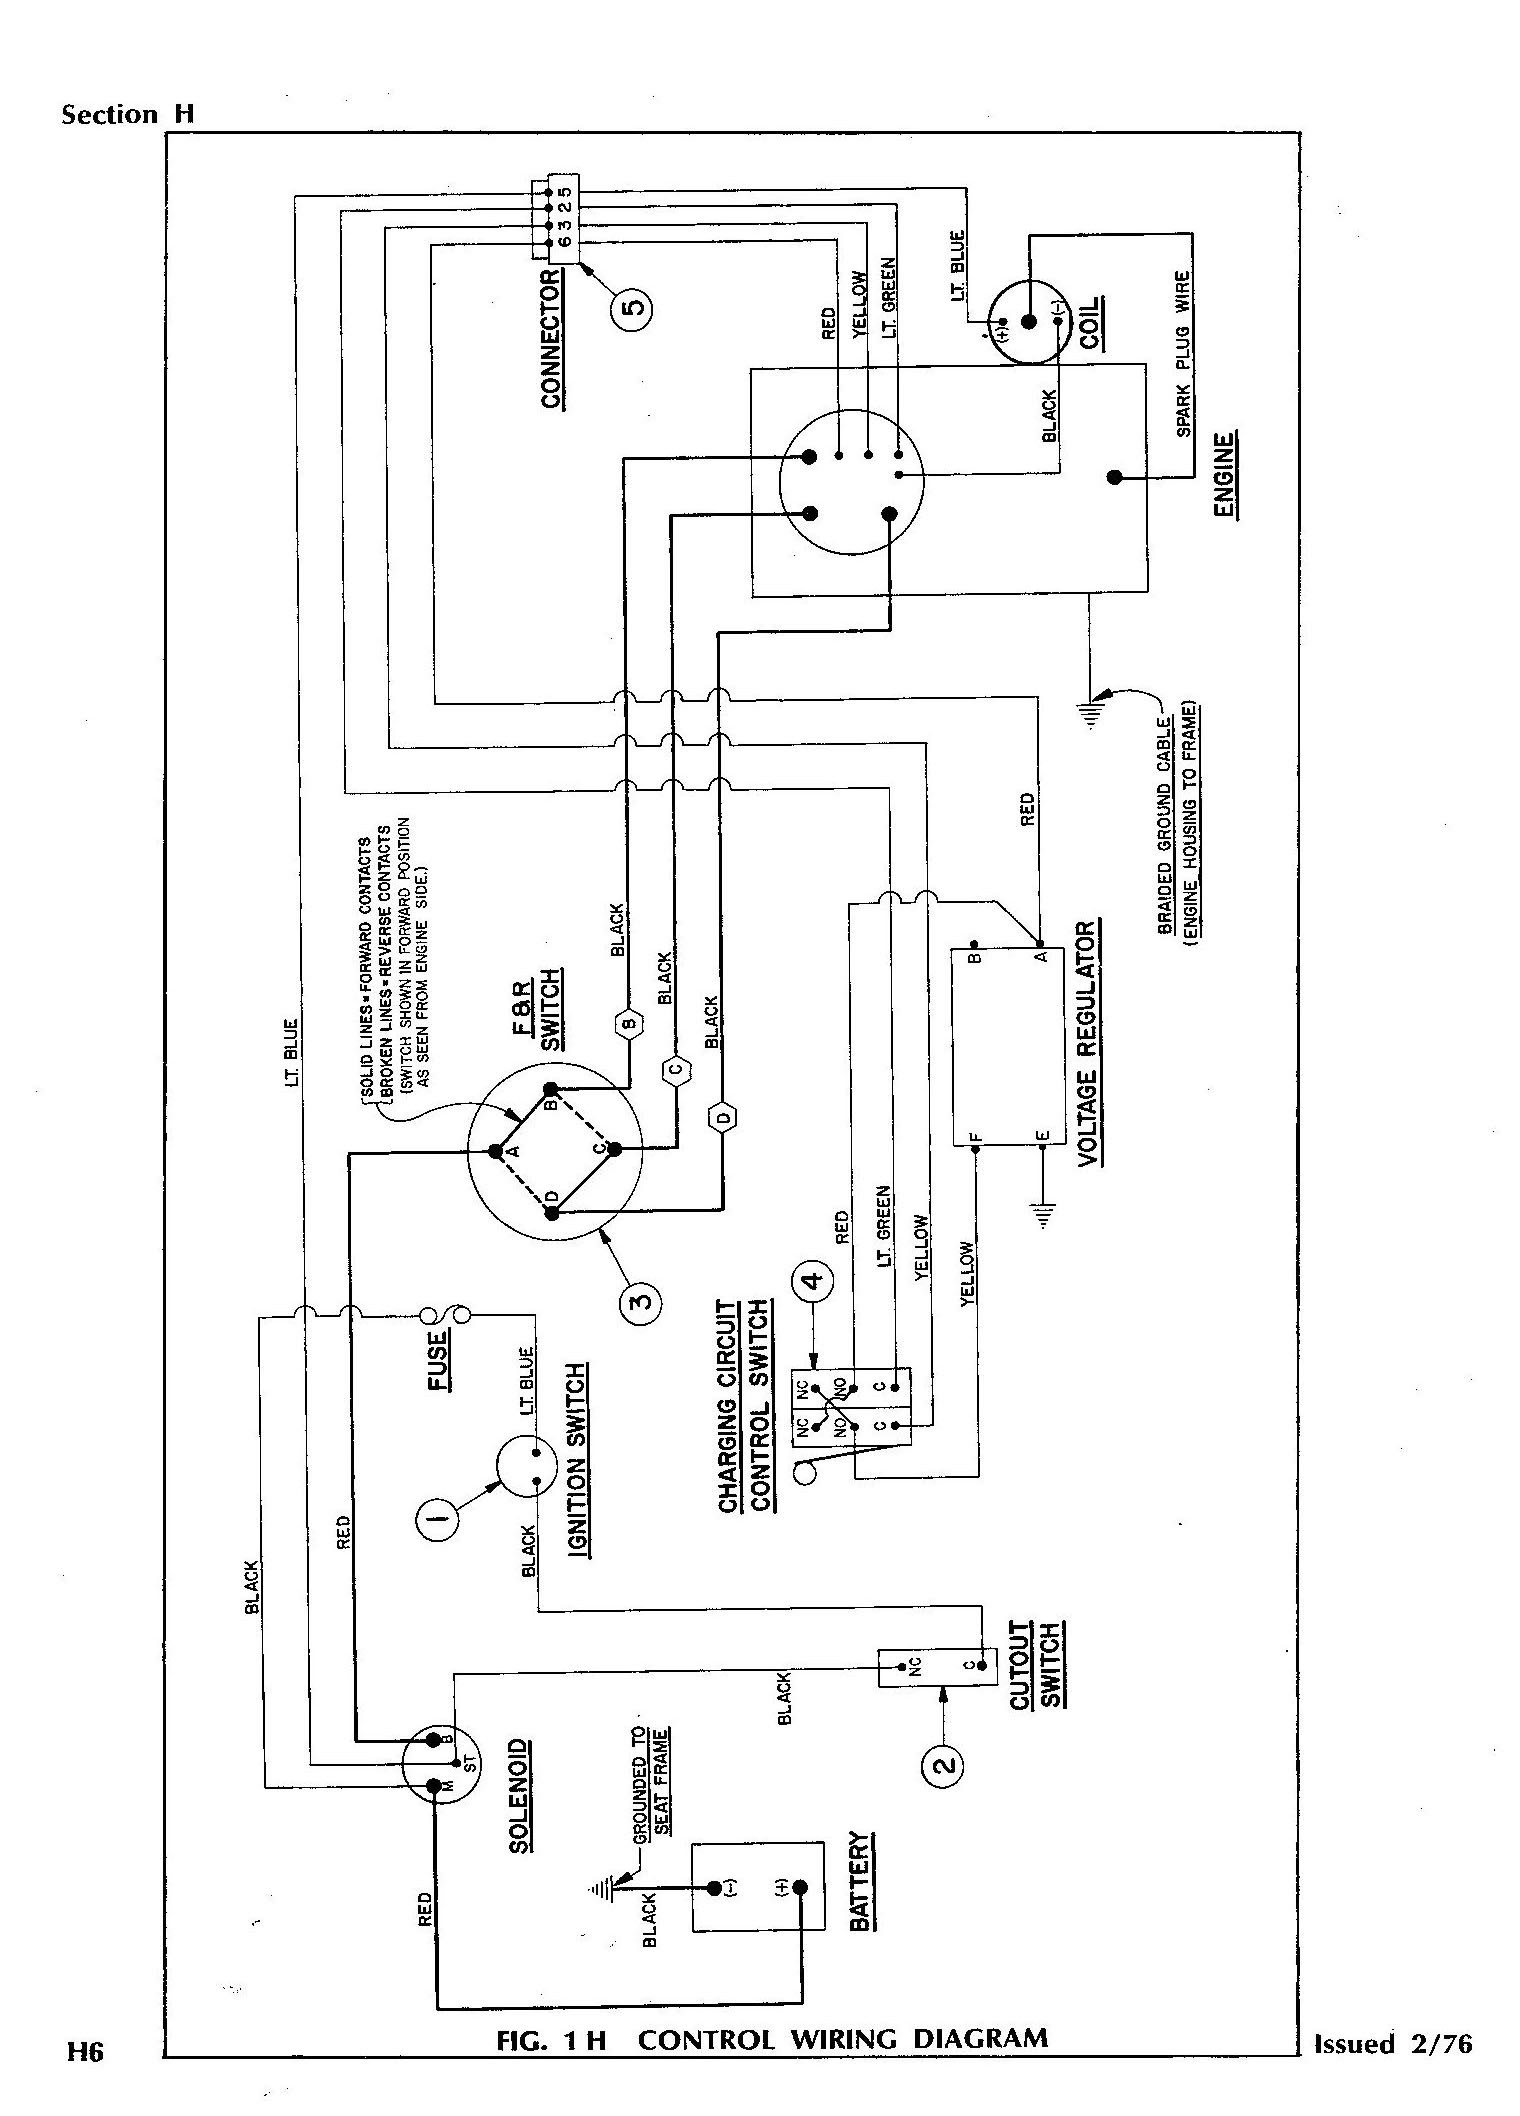 Ezgo Marathon Wiring Diagram 1979 | Wiring Diagram on